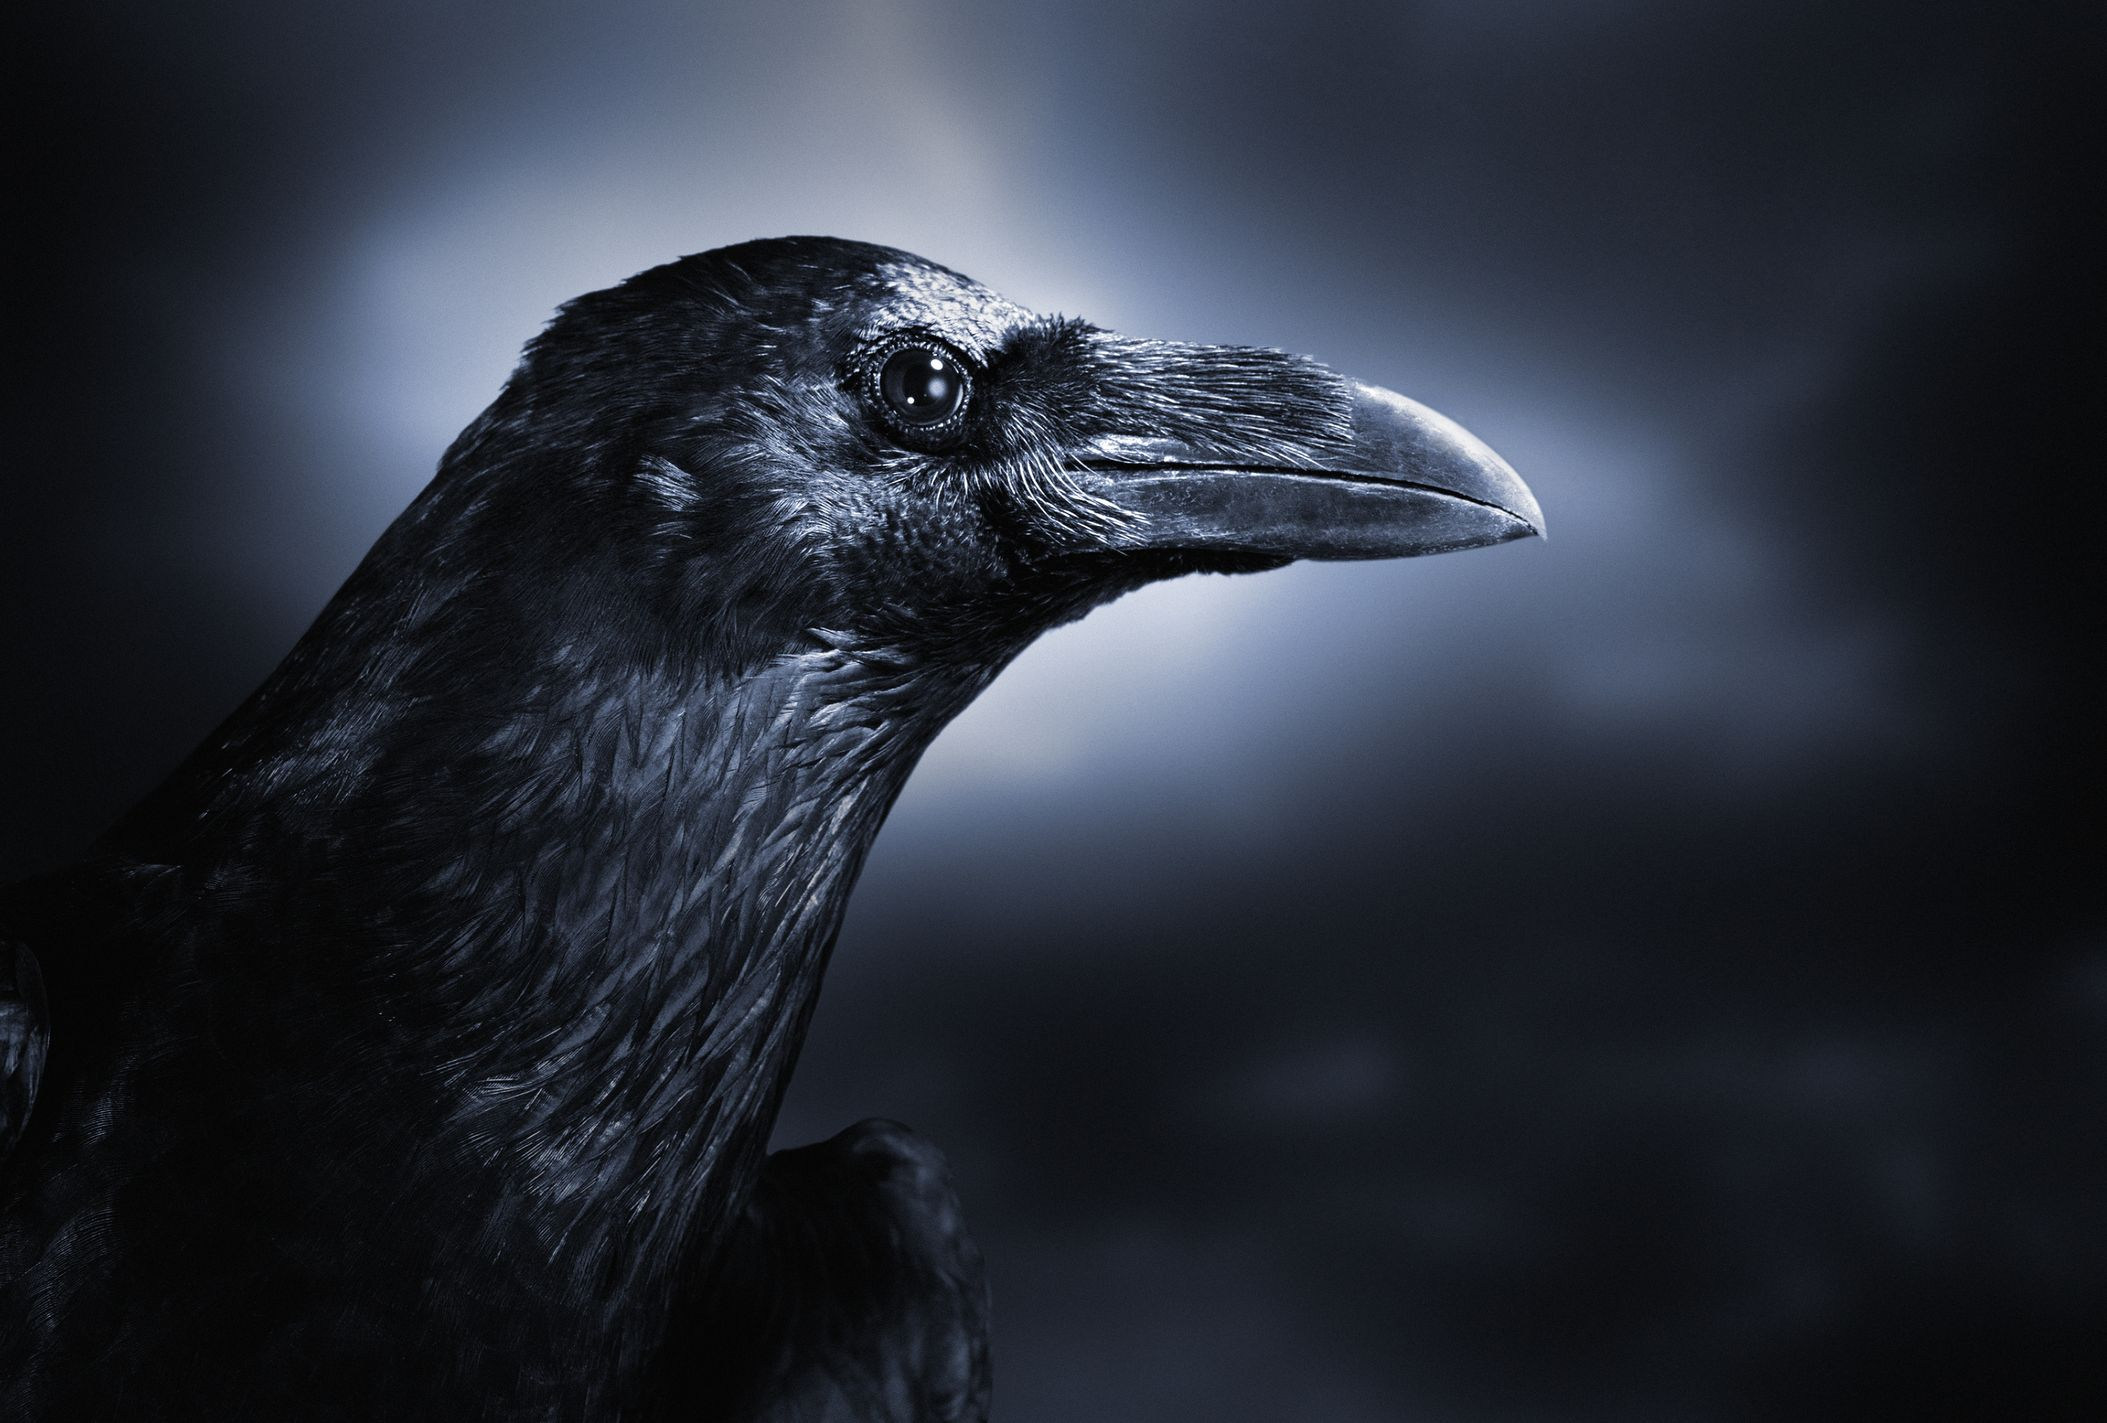 Crows Are Self-Aware and 'Know What They Know,' Just Like Humans